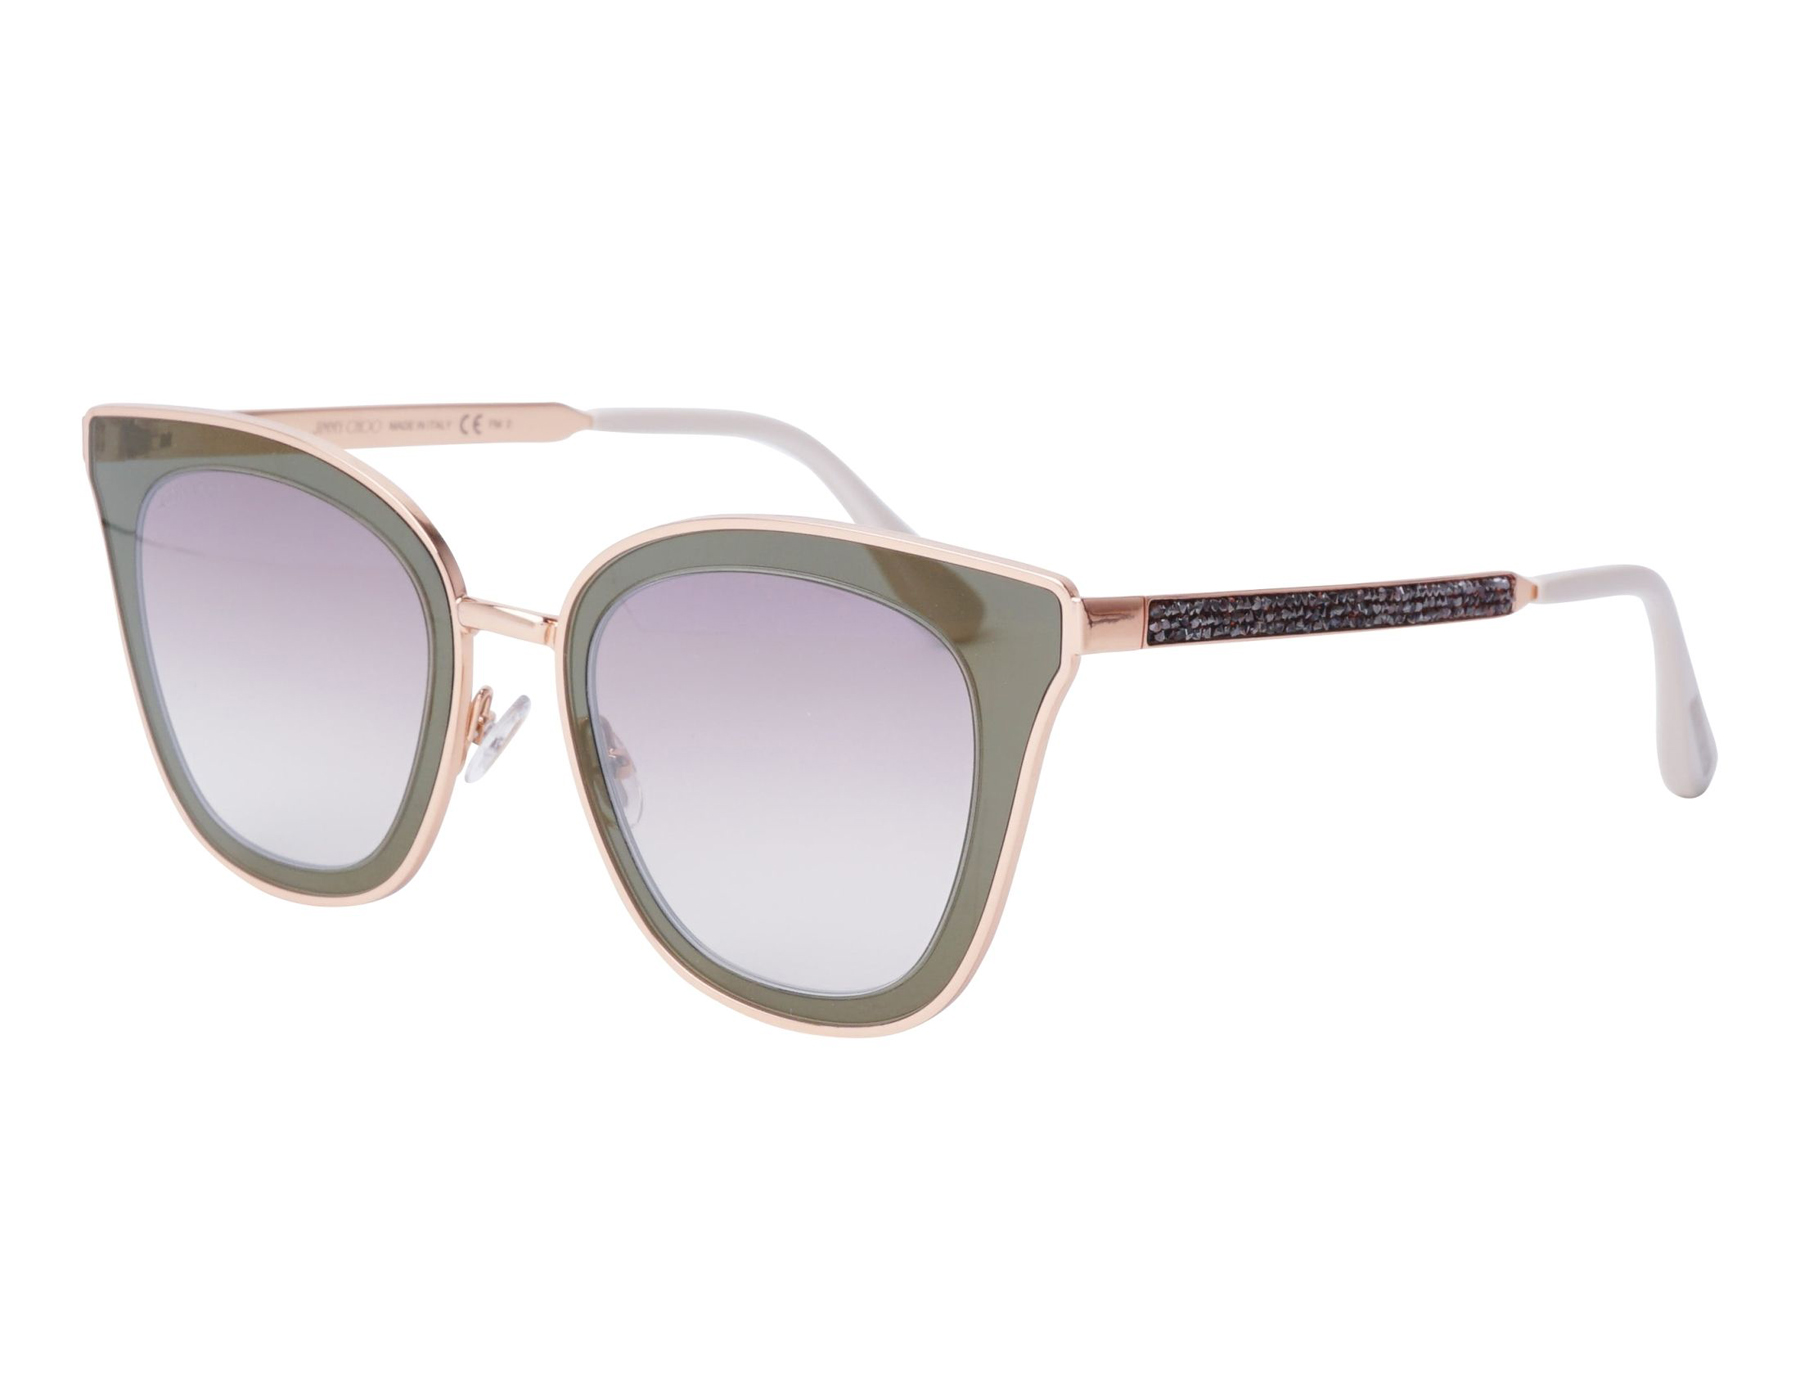 9666573e7297 Details about NEW Jimmy Choo Lory YK9 NQ Gold Brown Glitter   Grey Brown  Sunglasses